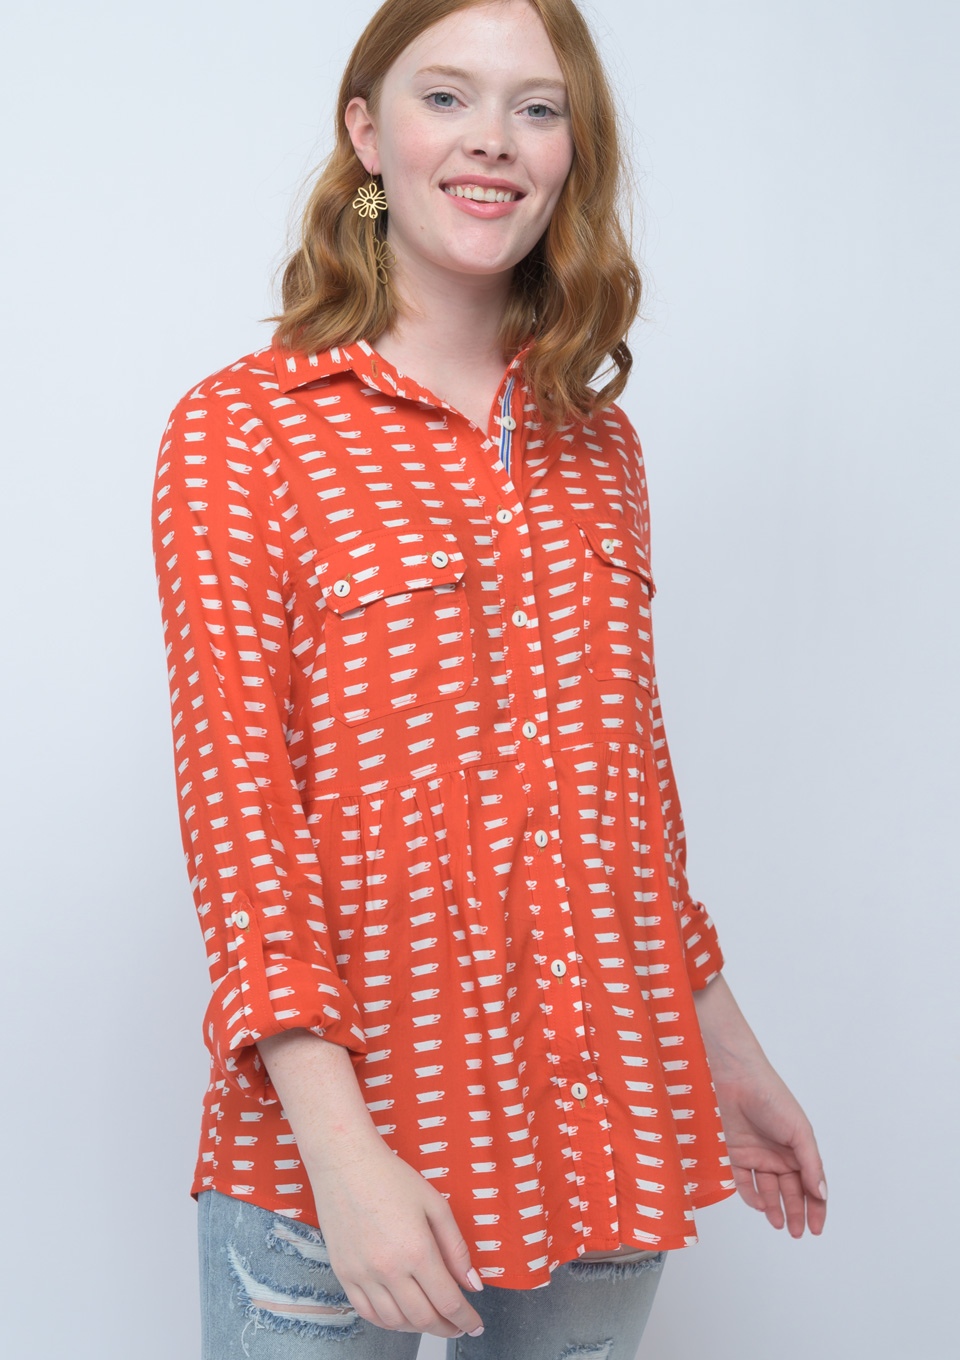 Coffee, Tea or Me Blouse from Ivy Jane